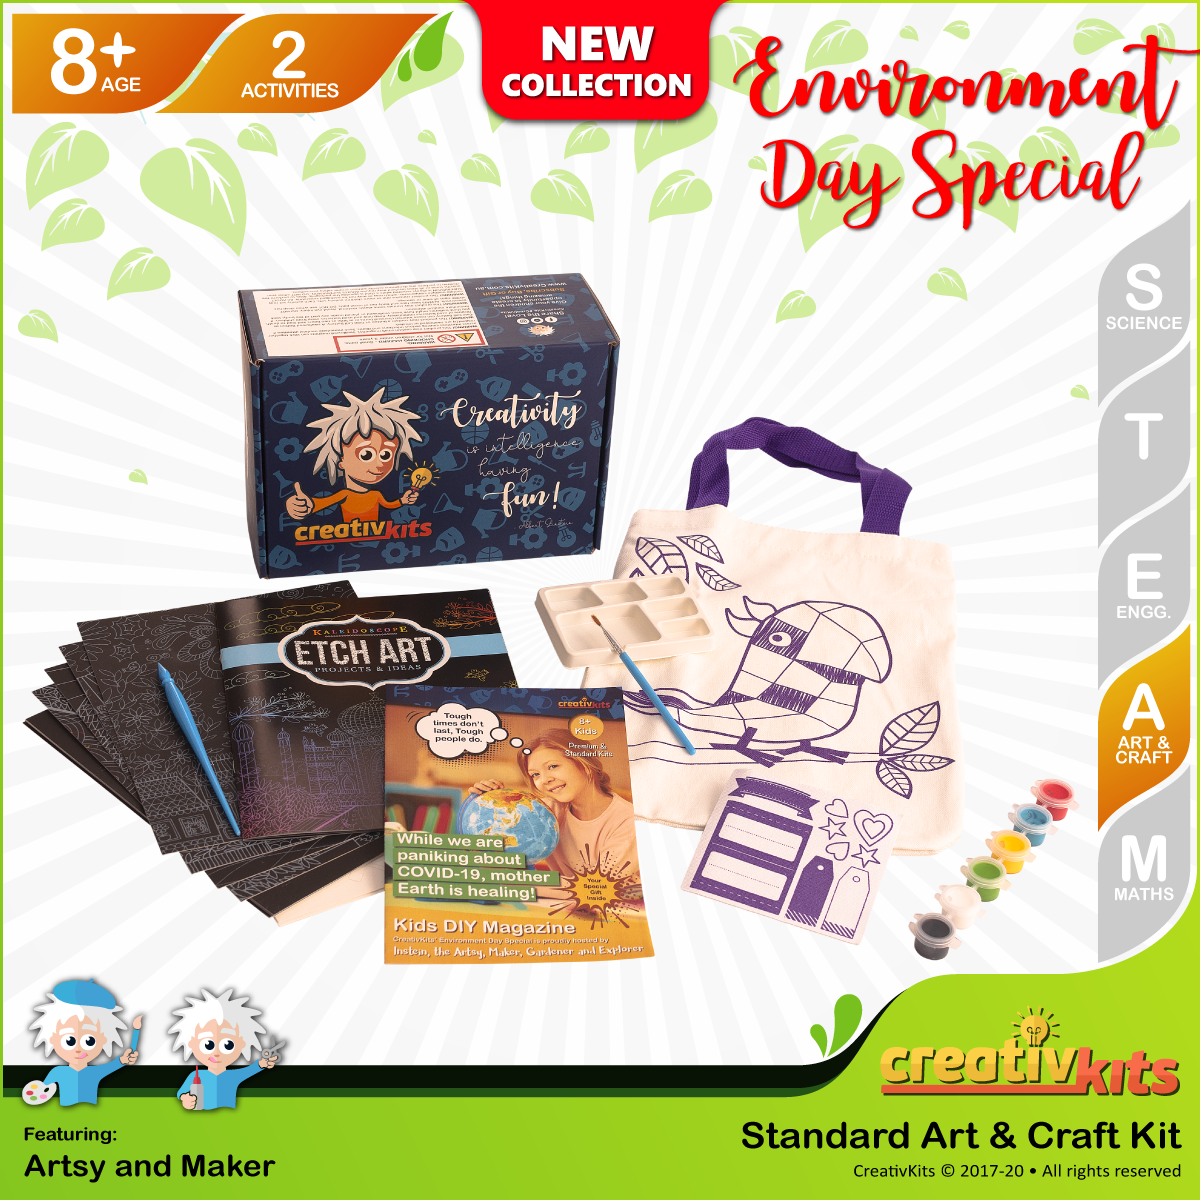 May Standard Art & Craft Kit • Age 8 plus • Design Reusable Bag and Make Your Own Etch Art